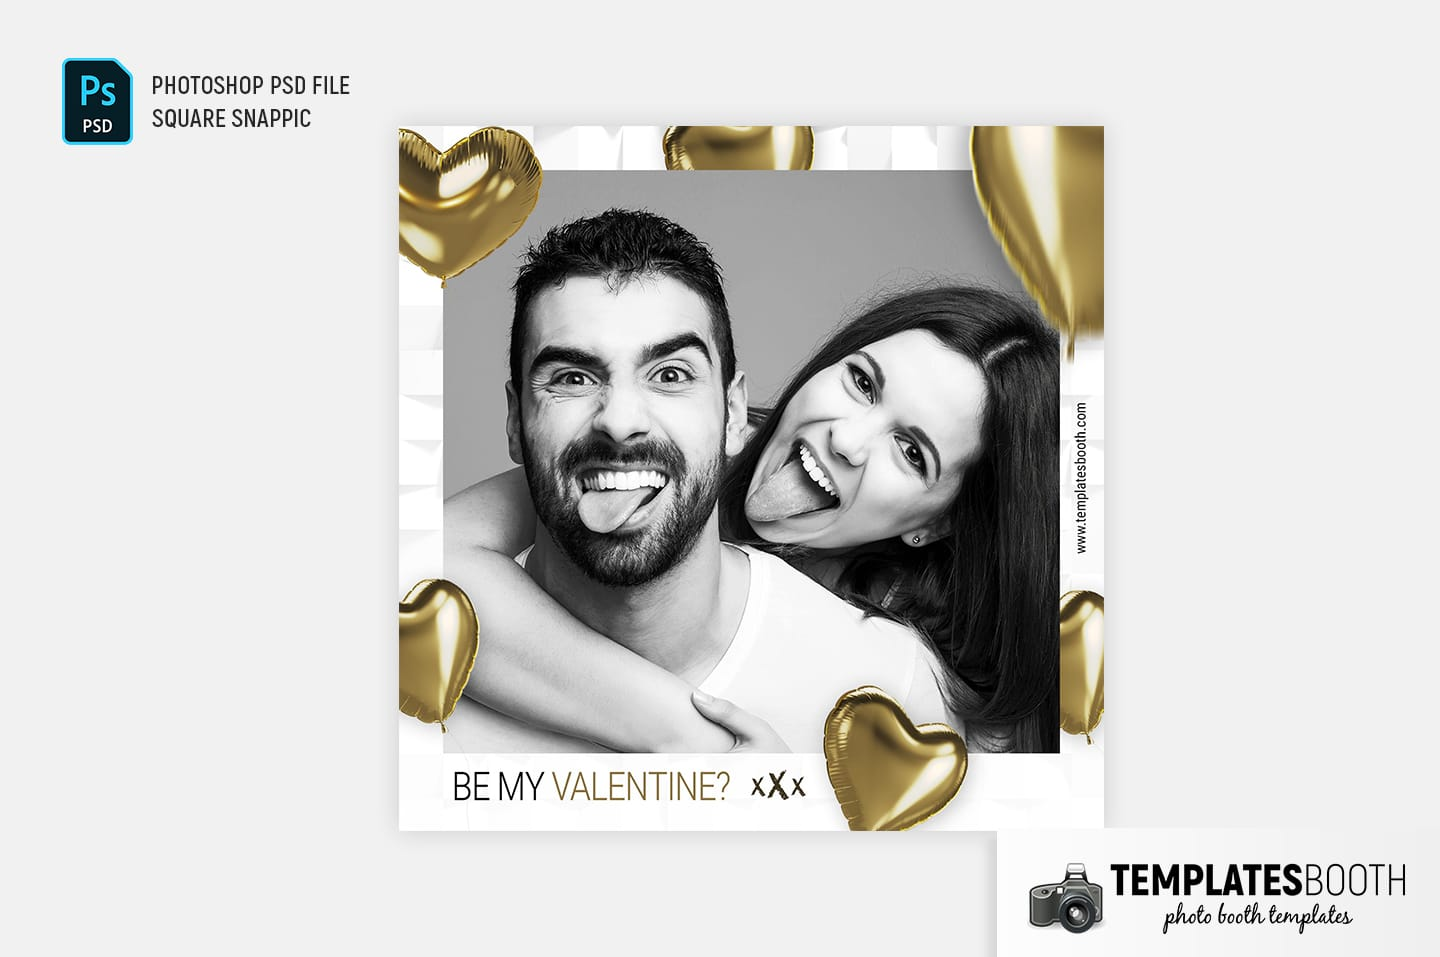 Be My Valentine Photo Booth Template (square Snappic)